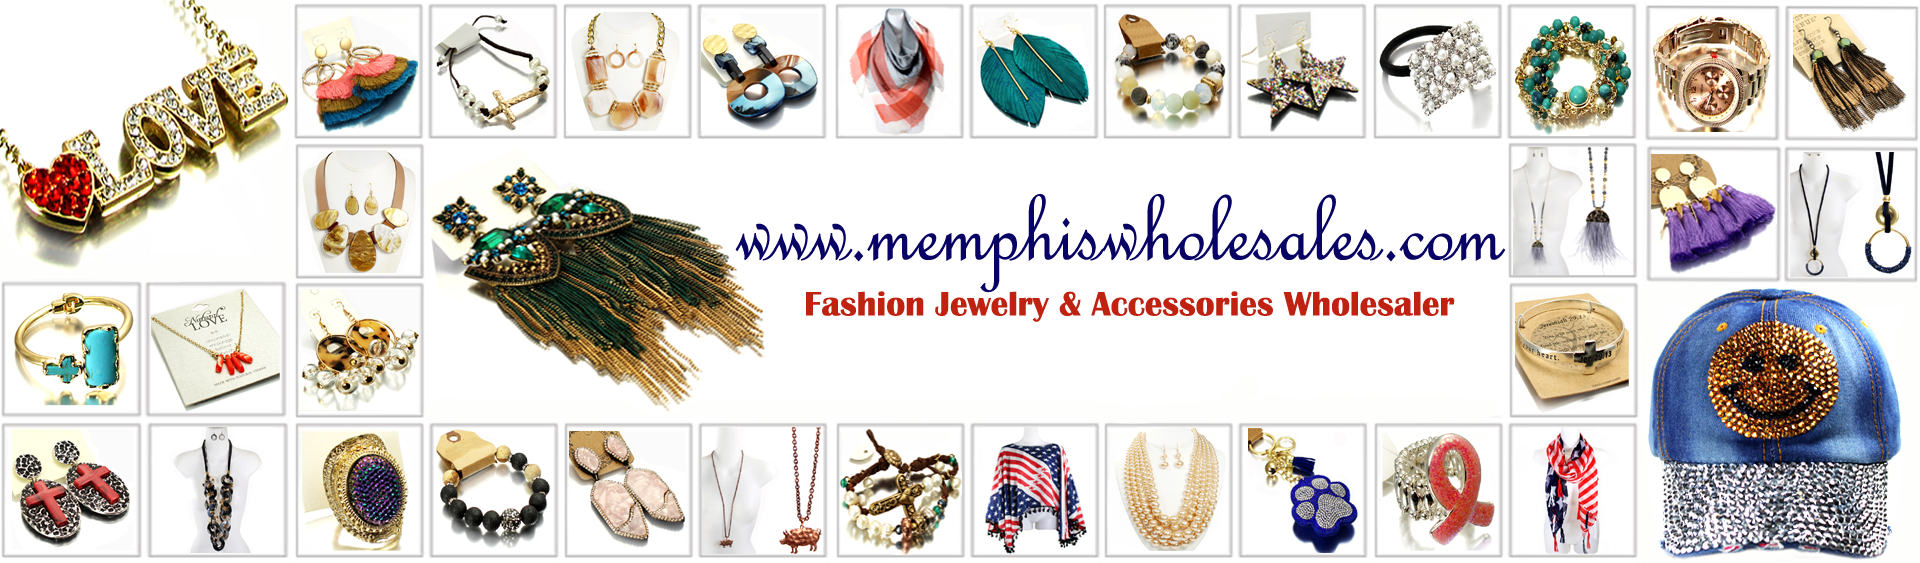 Memphis Whole Jewelry Accessories